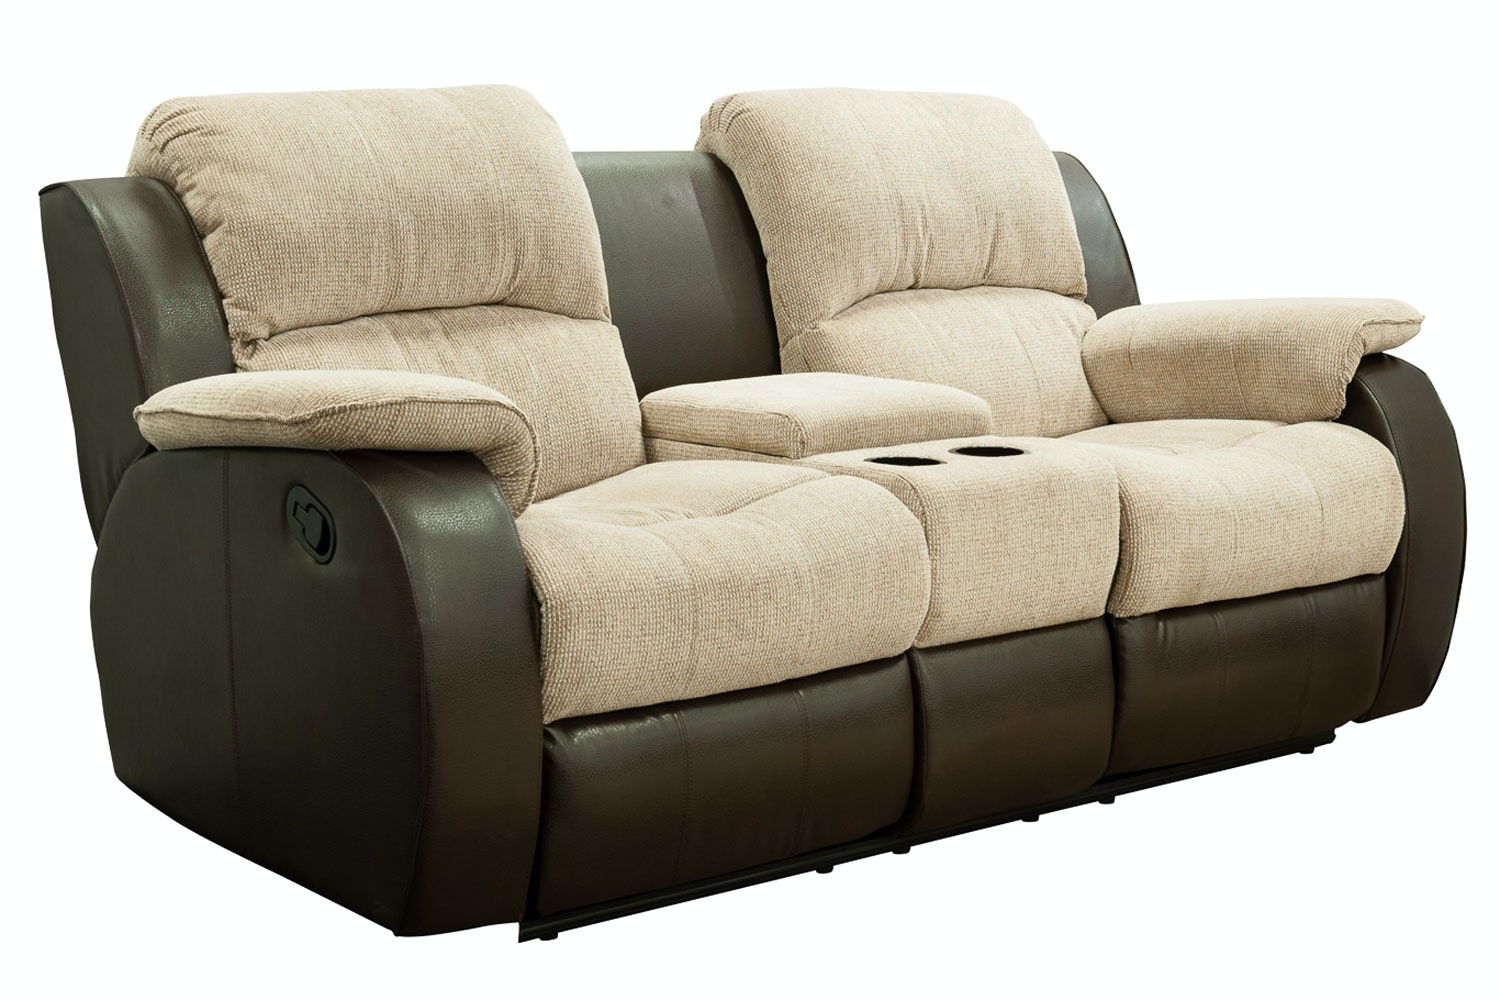 Kayde Console Recliner Sofa  sc 1 st  Harvey Norman : recliner sofa with console - islam-shia.org